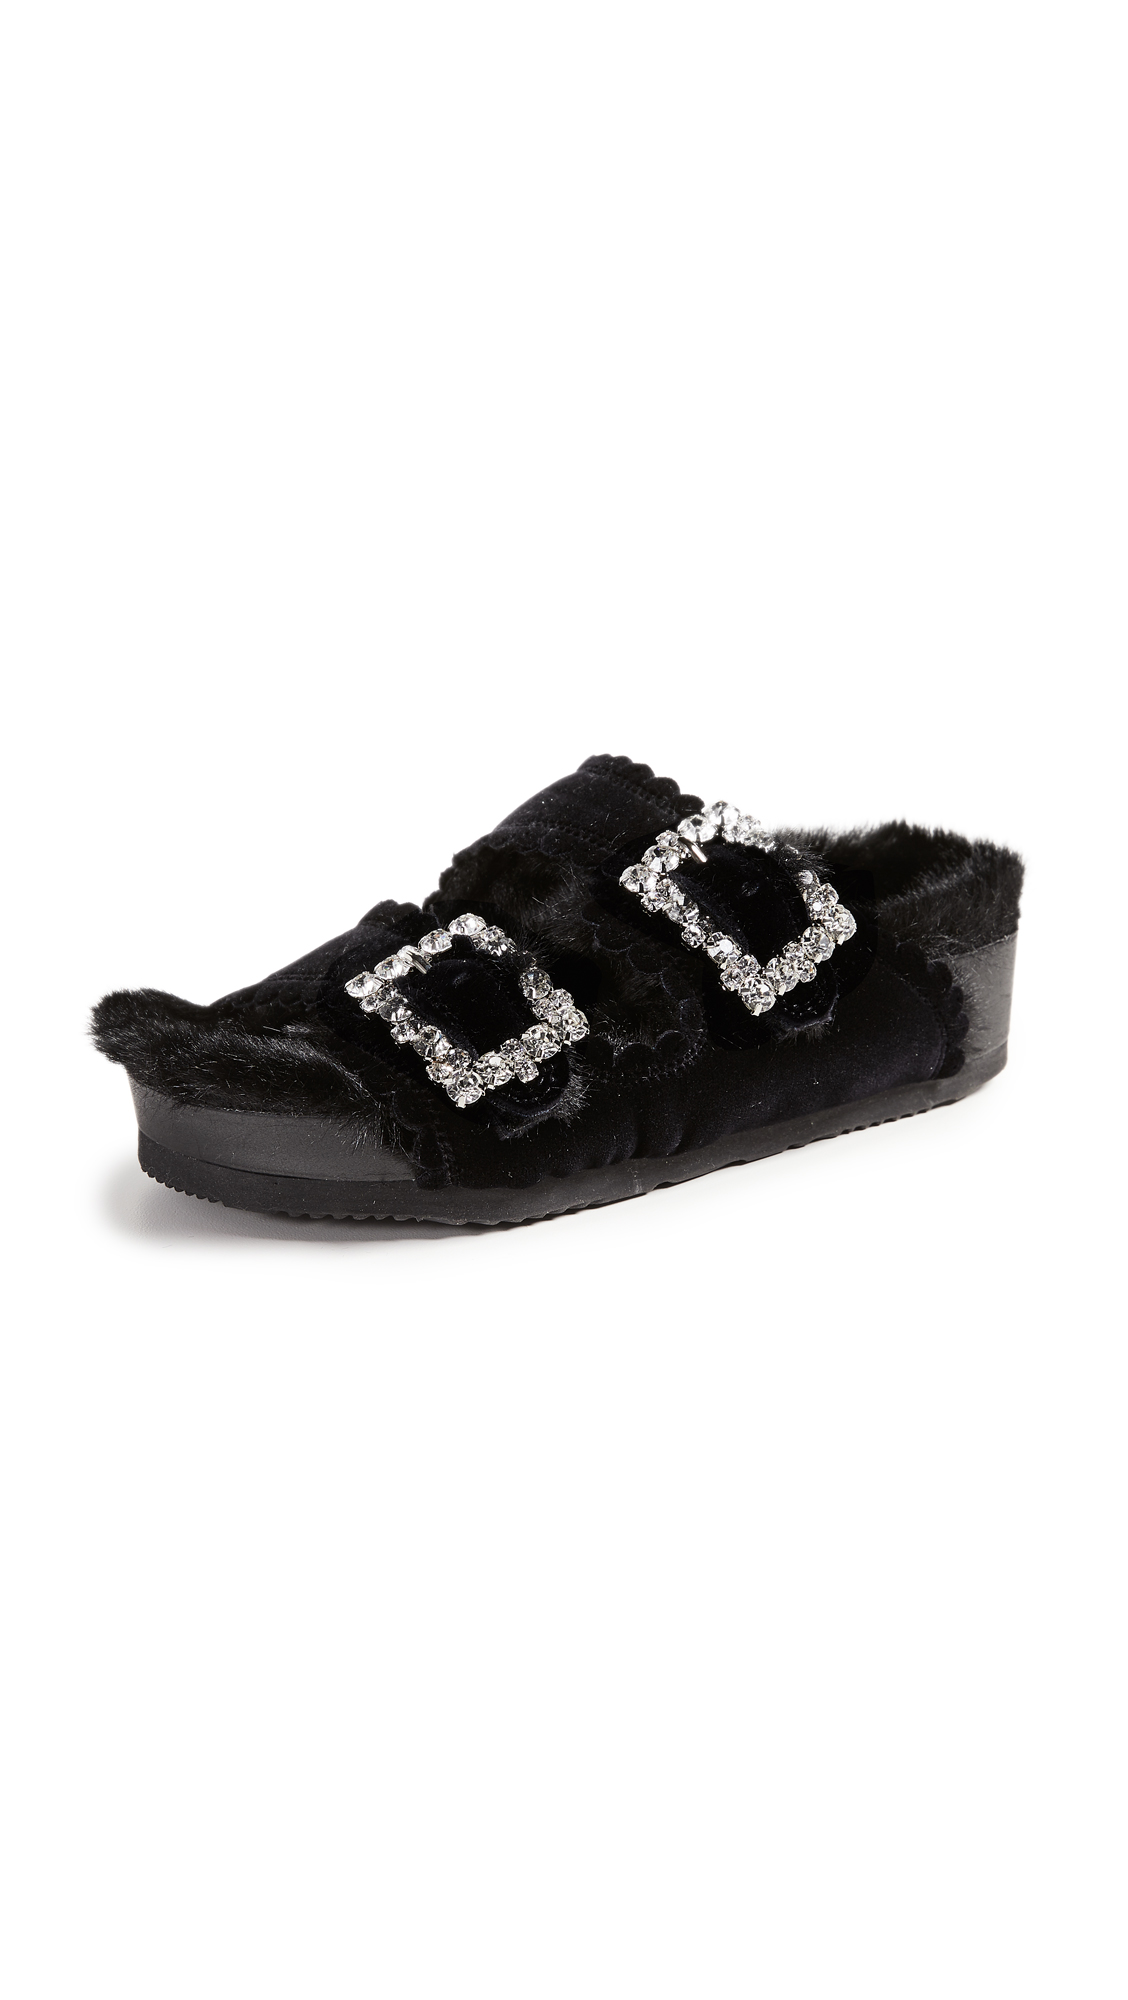 Suecomma Bonnie Jewel Detail Sandals - Black